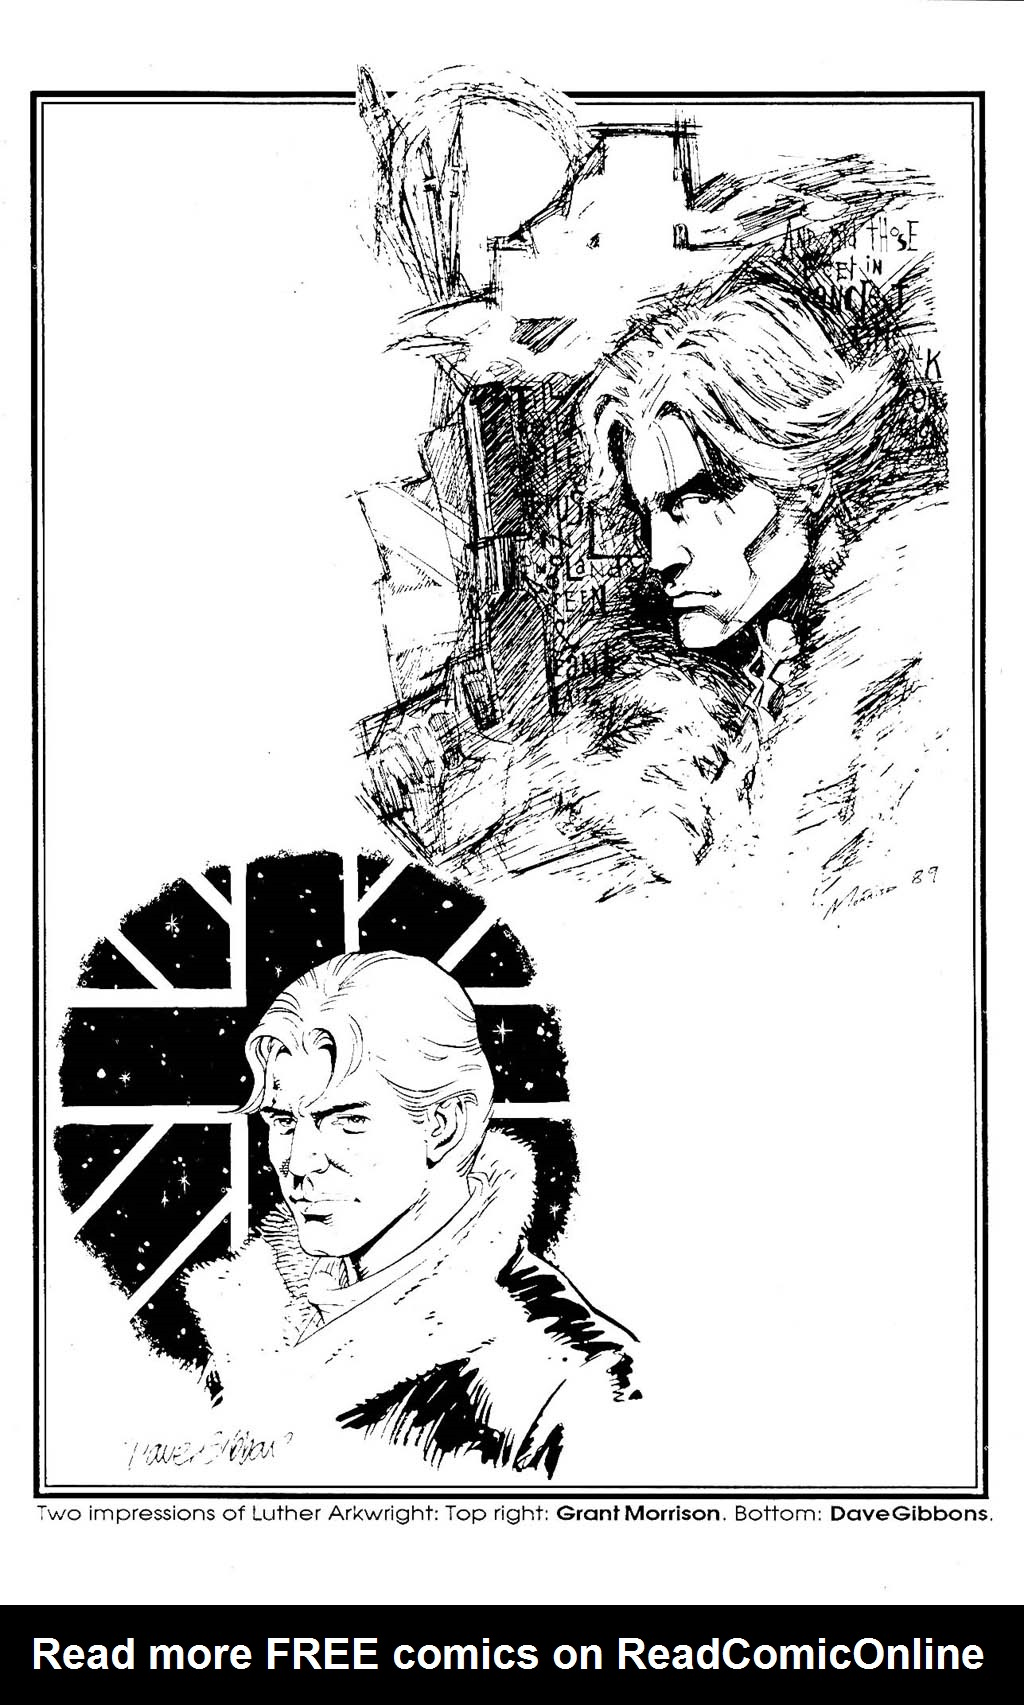 Read online The Adventures of Luther Arkwright comic -  Issue #7 - 29